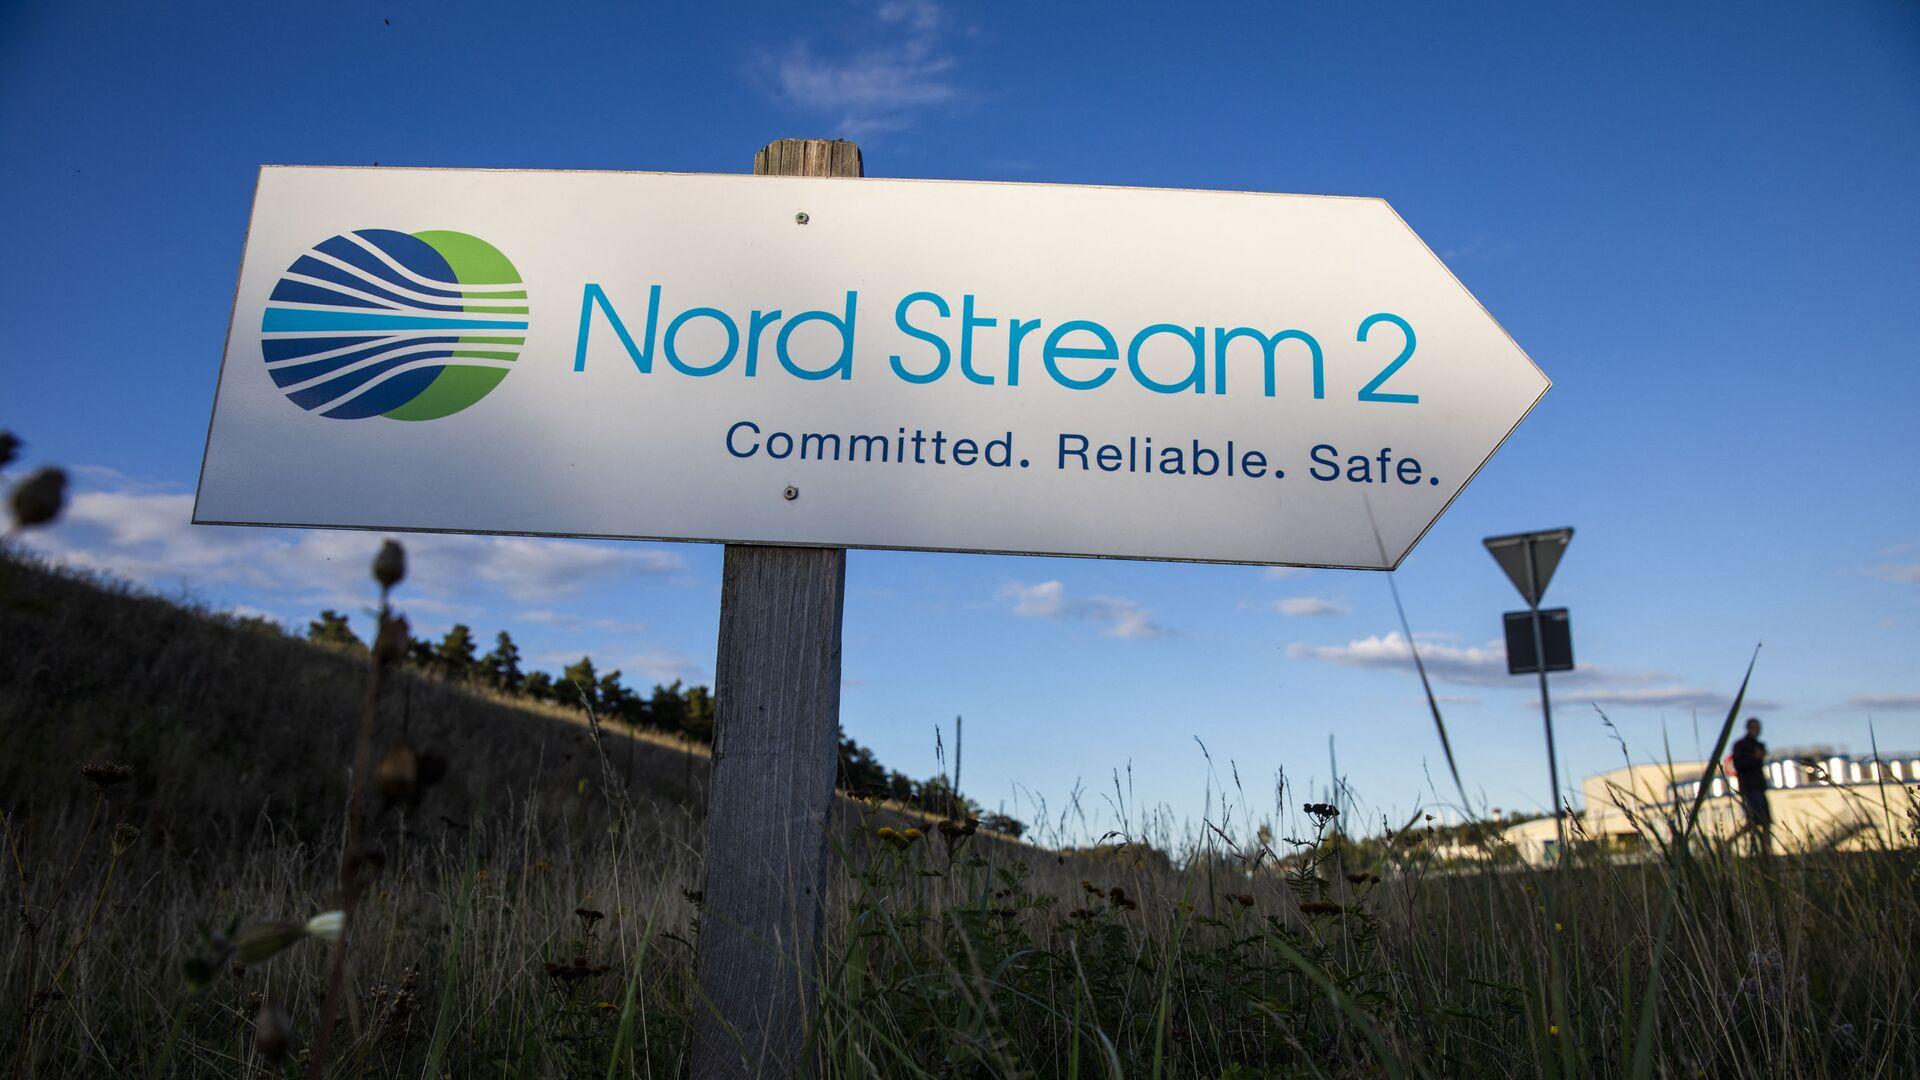 A road sign directs traffic towards the Nord Stream 2 gas line landfall facility entrance in Lubmin, north eastern Germany, on September 7, 2020. - Sputnik International, 1920, 20.06.2021